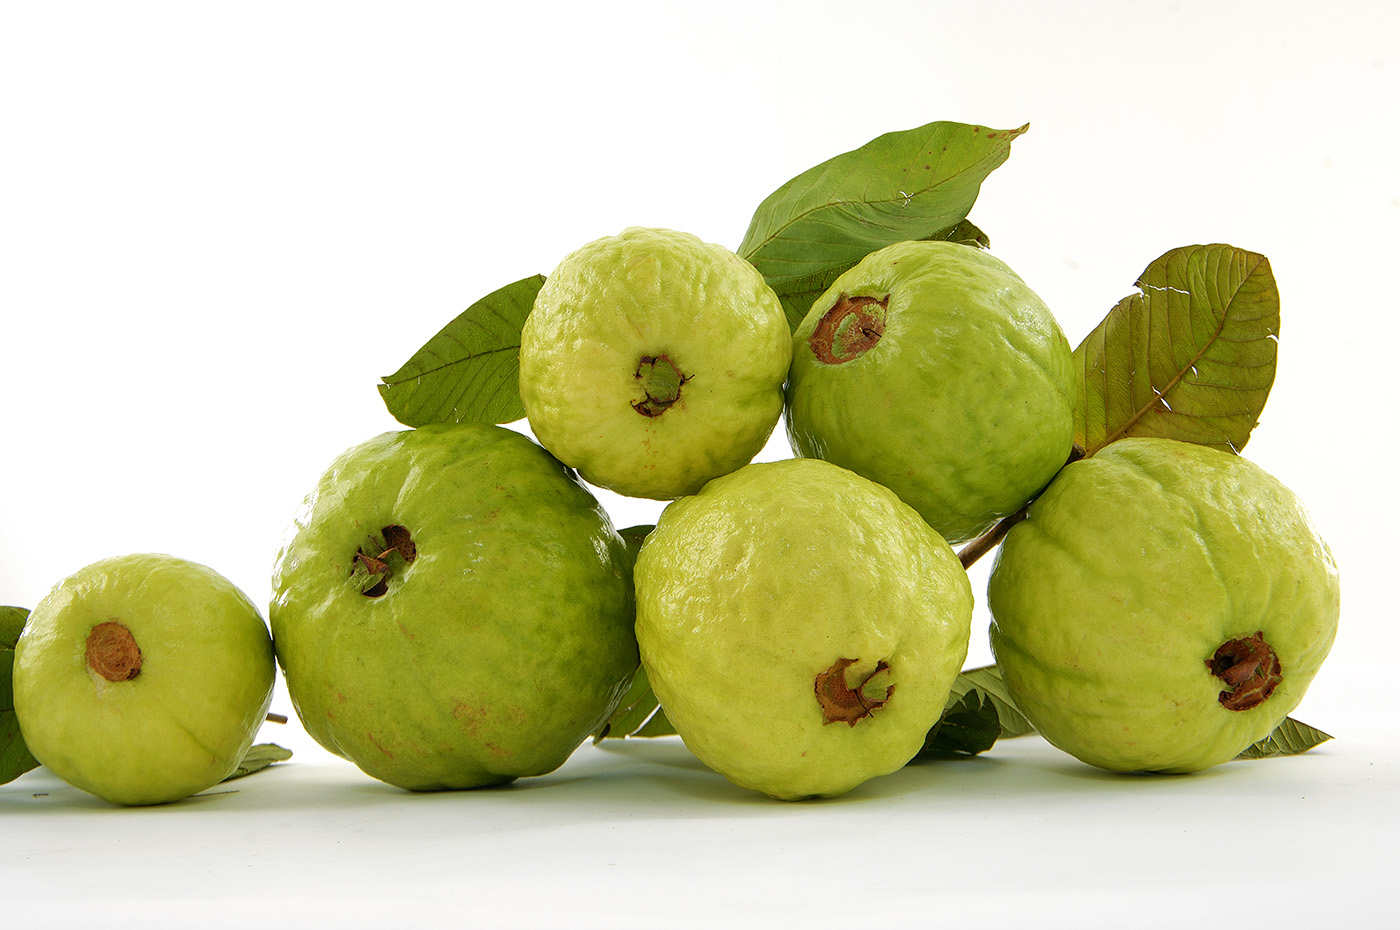 Guava fruit wallpaper